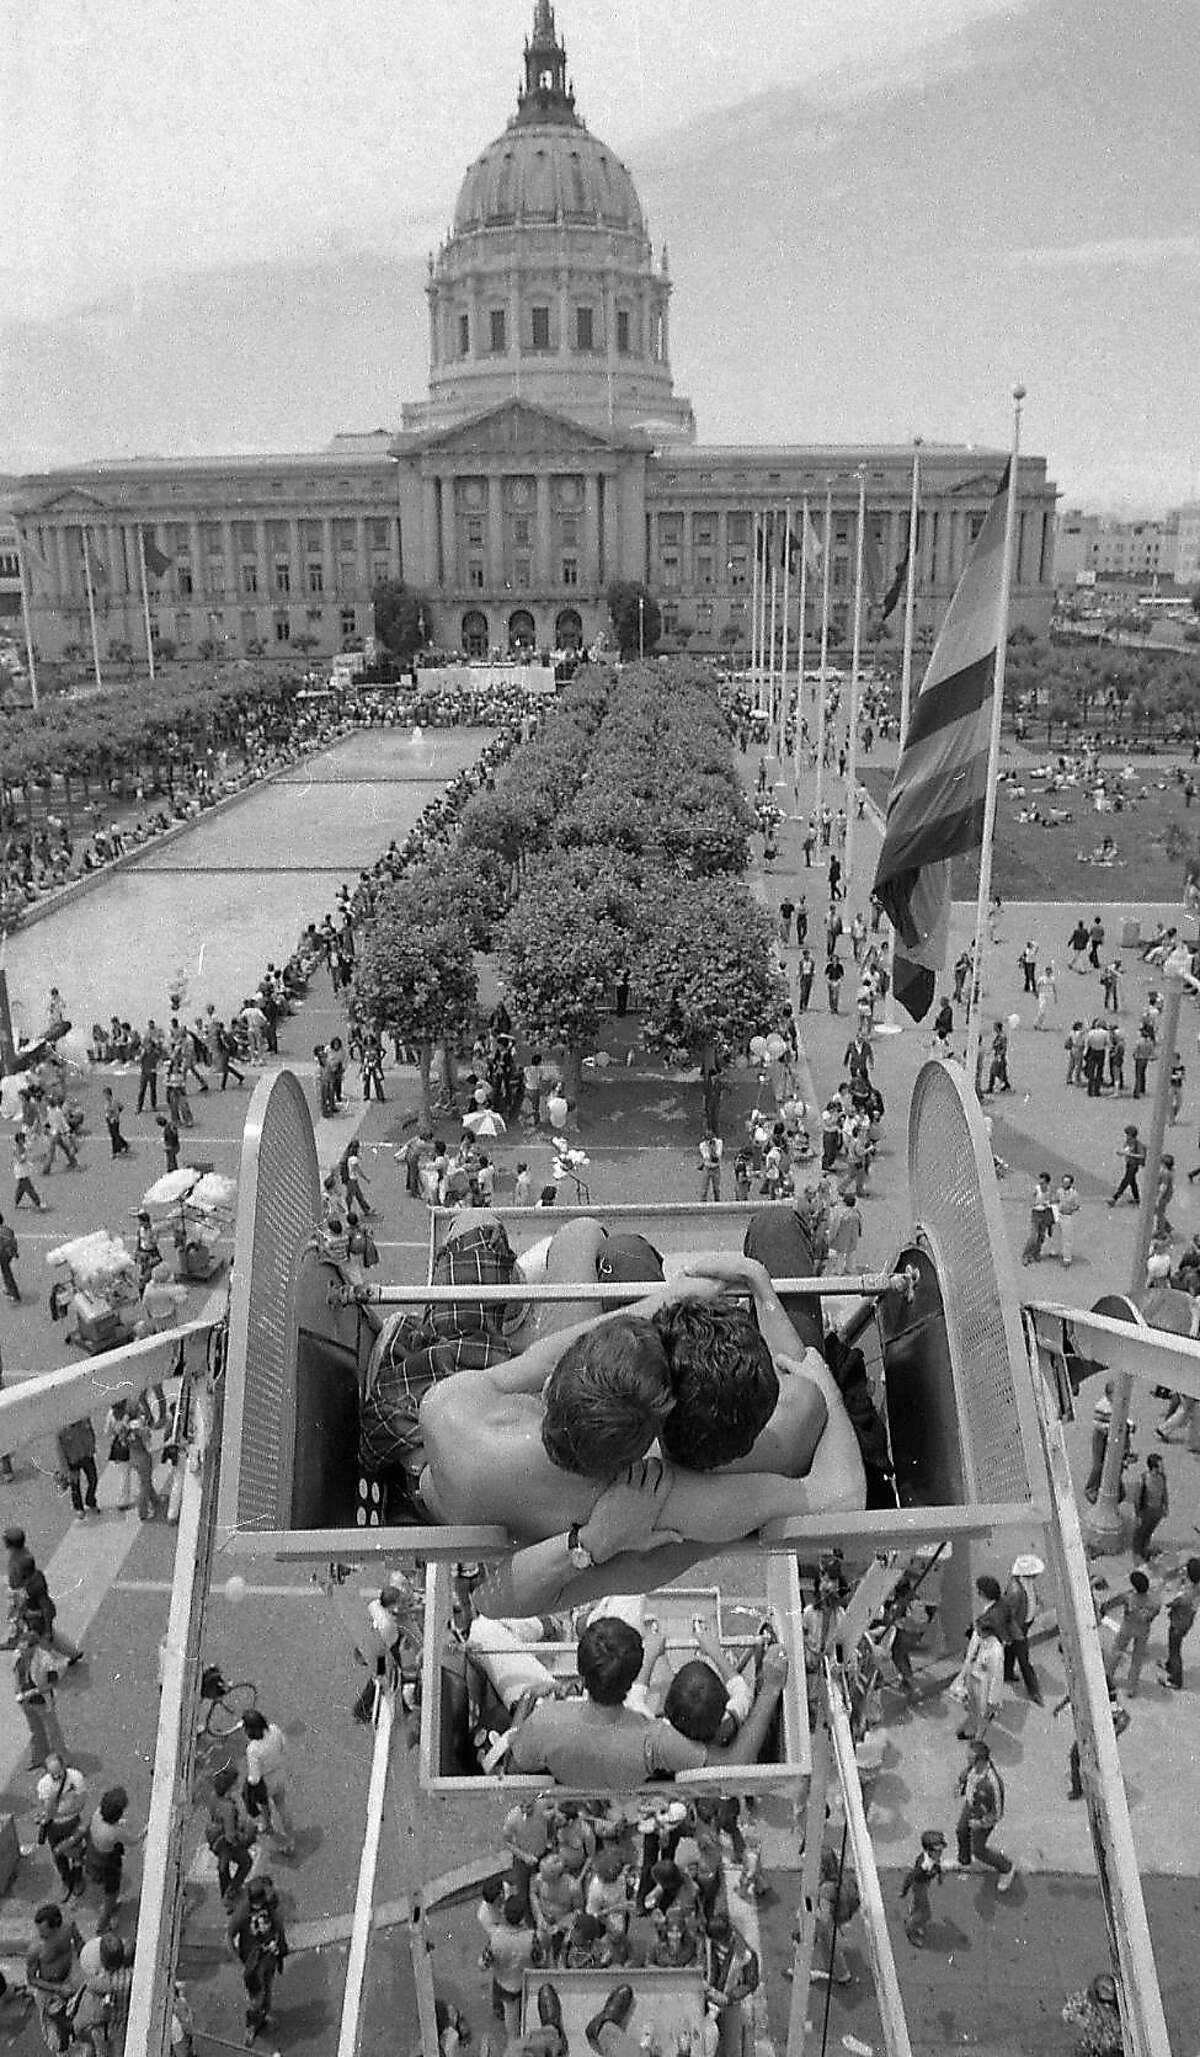 June 29, 1980: A carnival atmosphere came to City Hall for the Gay Freedom Day parade.